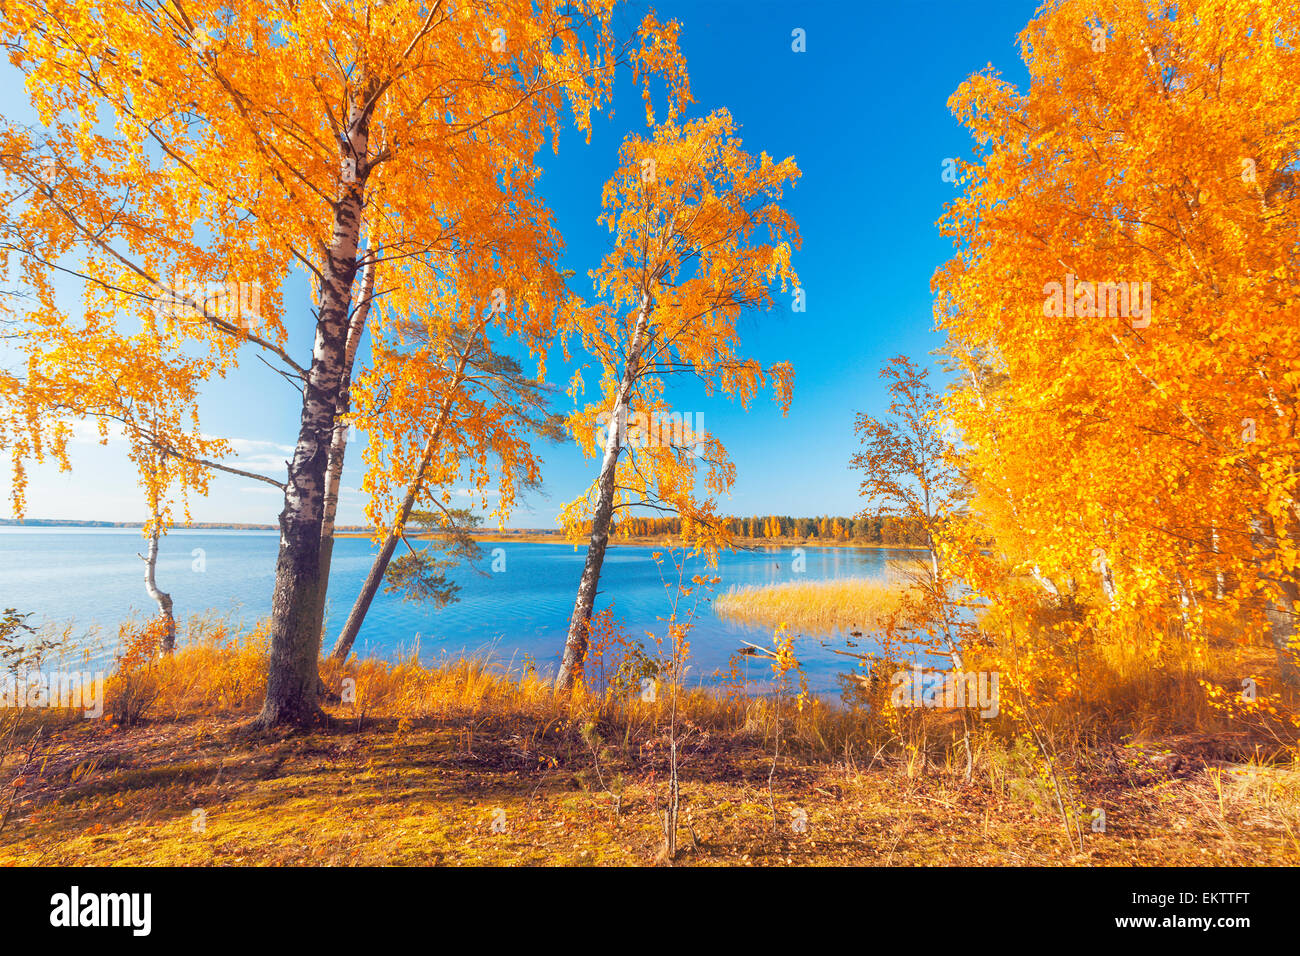 Autumnal Park. Autumn Trees and Leaves Stock Photo